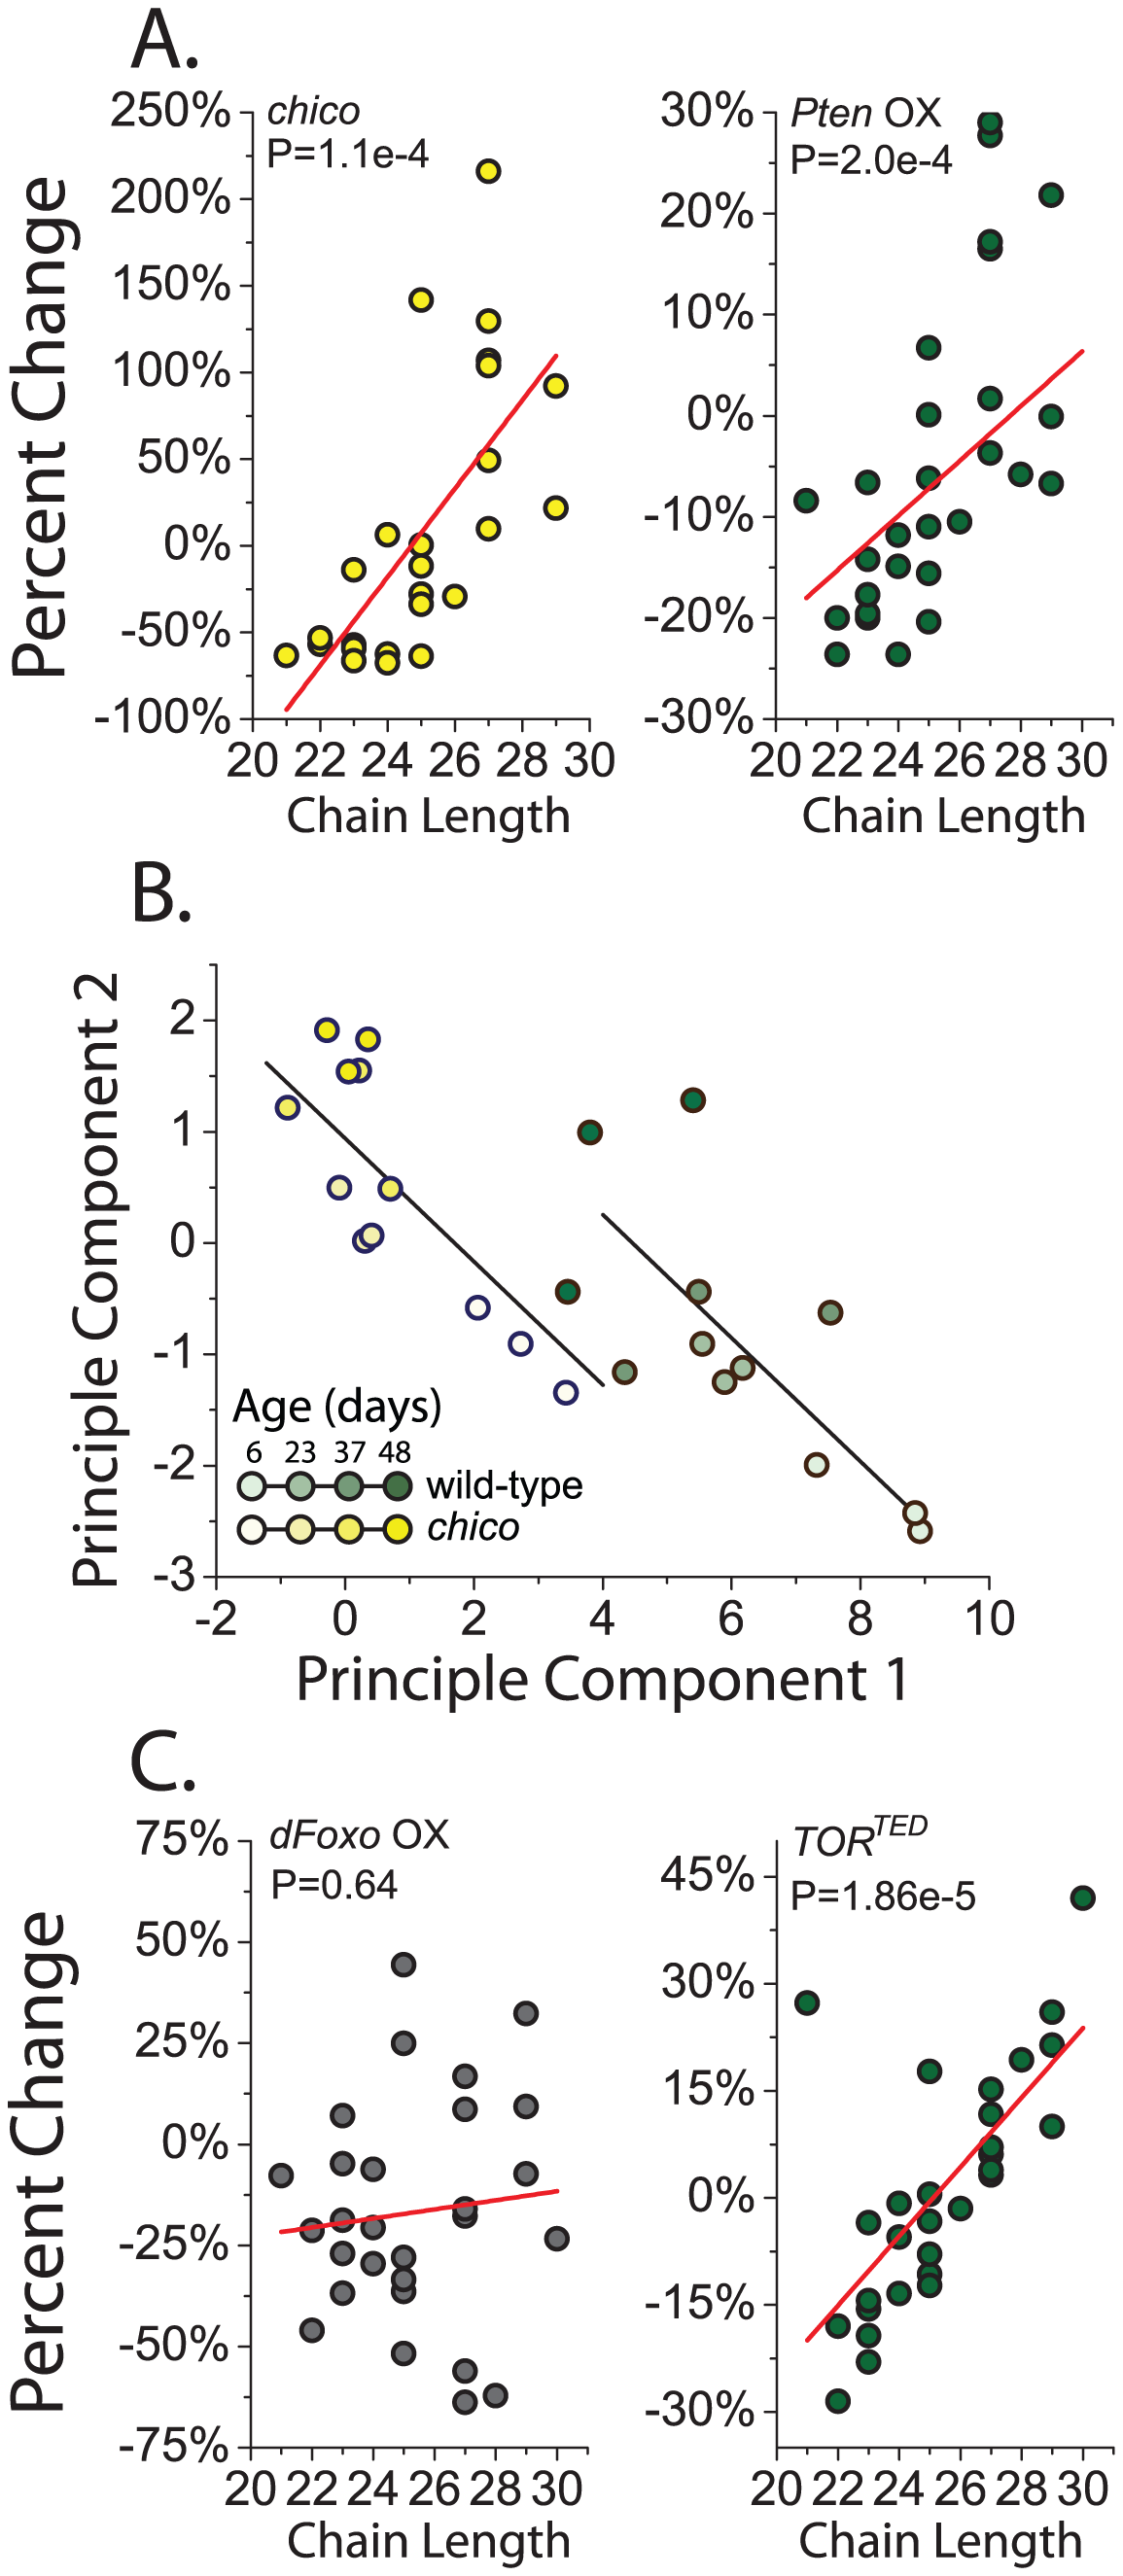 Reduced insulin signaling results in an increased proportion of longer chain CHC.